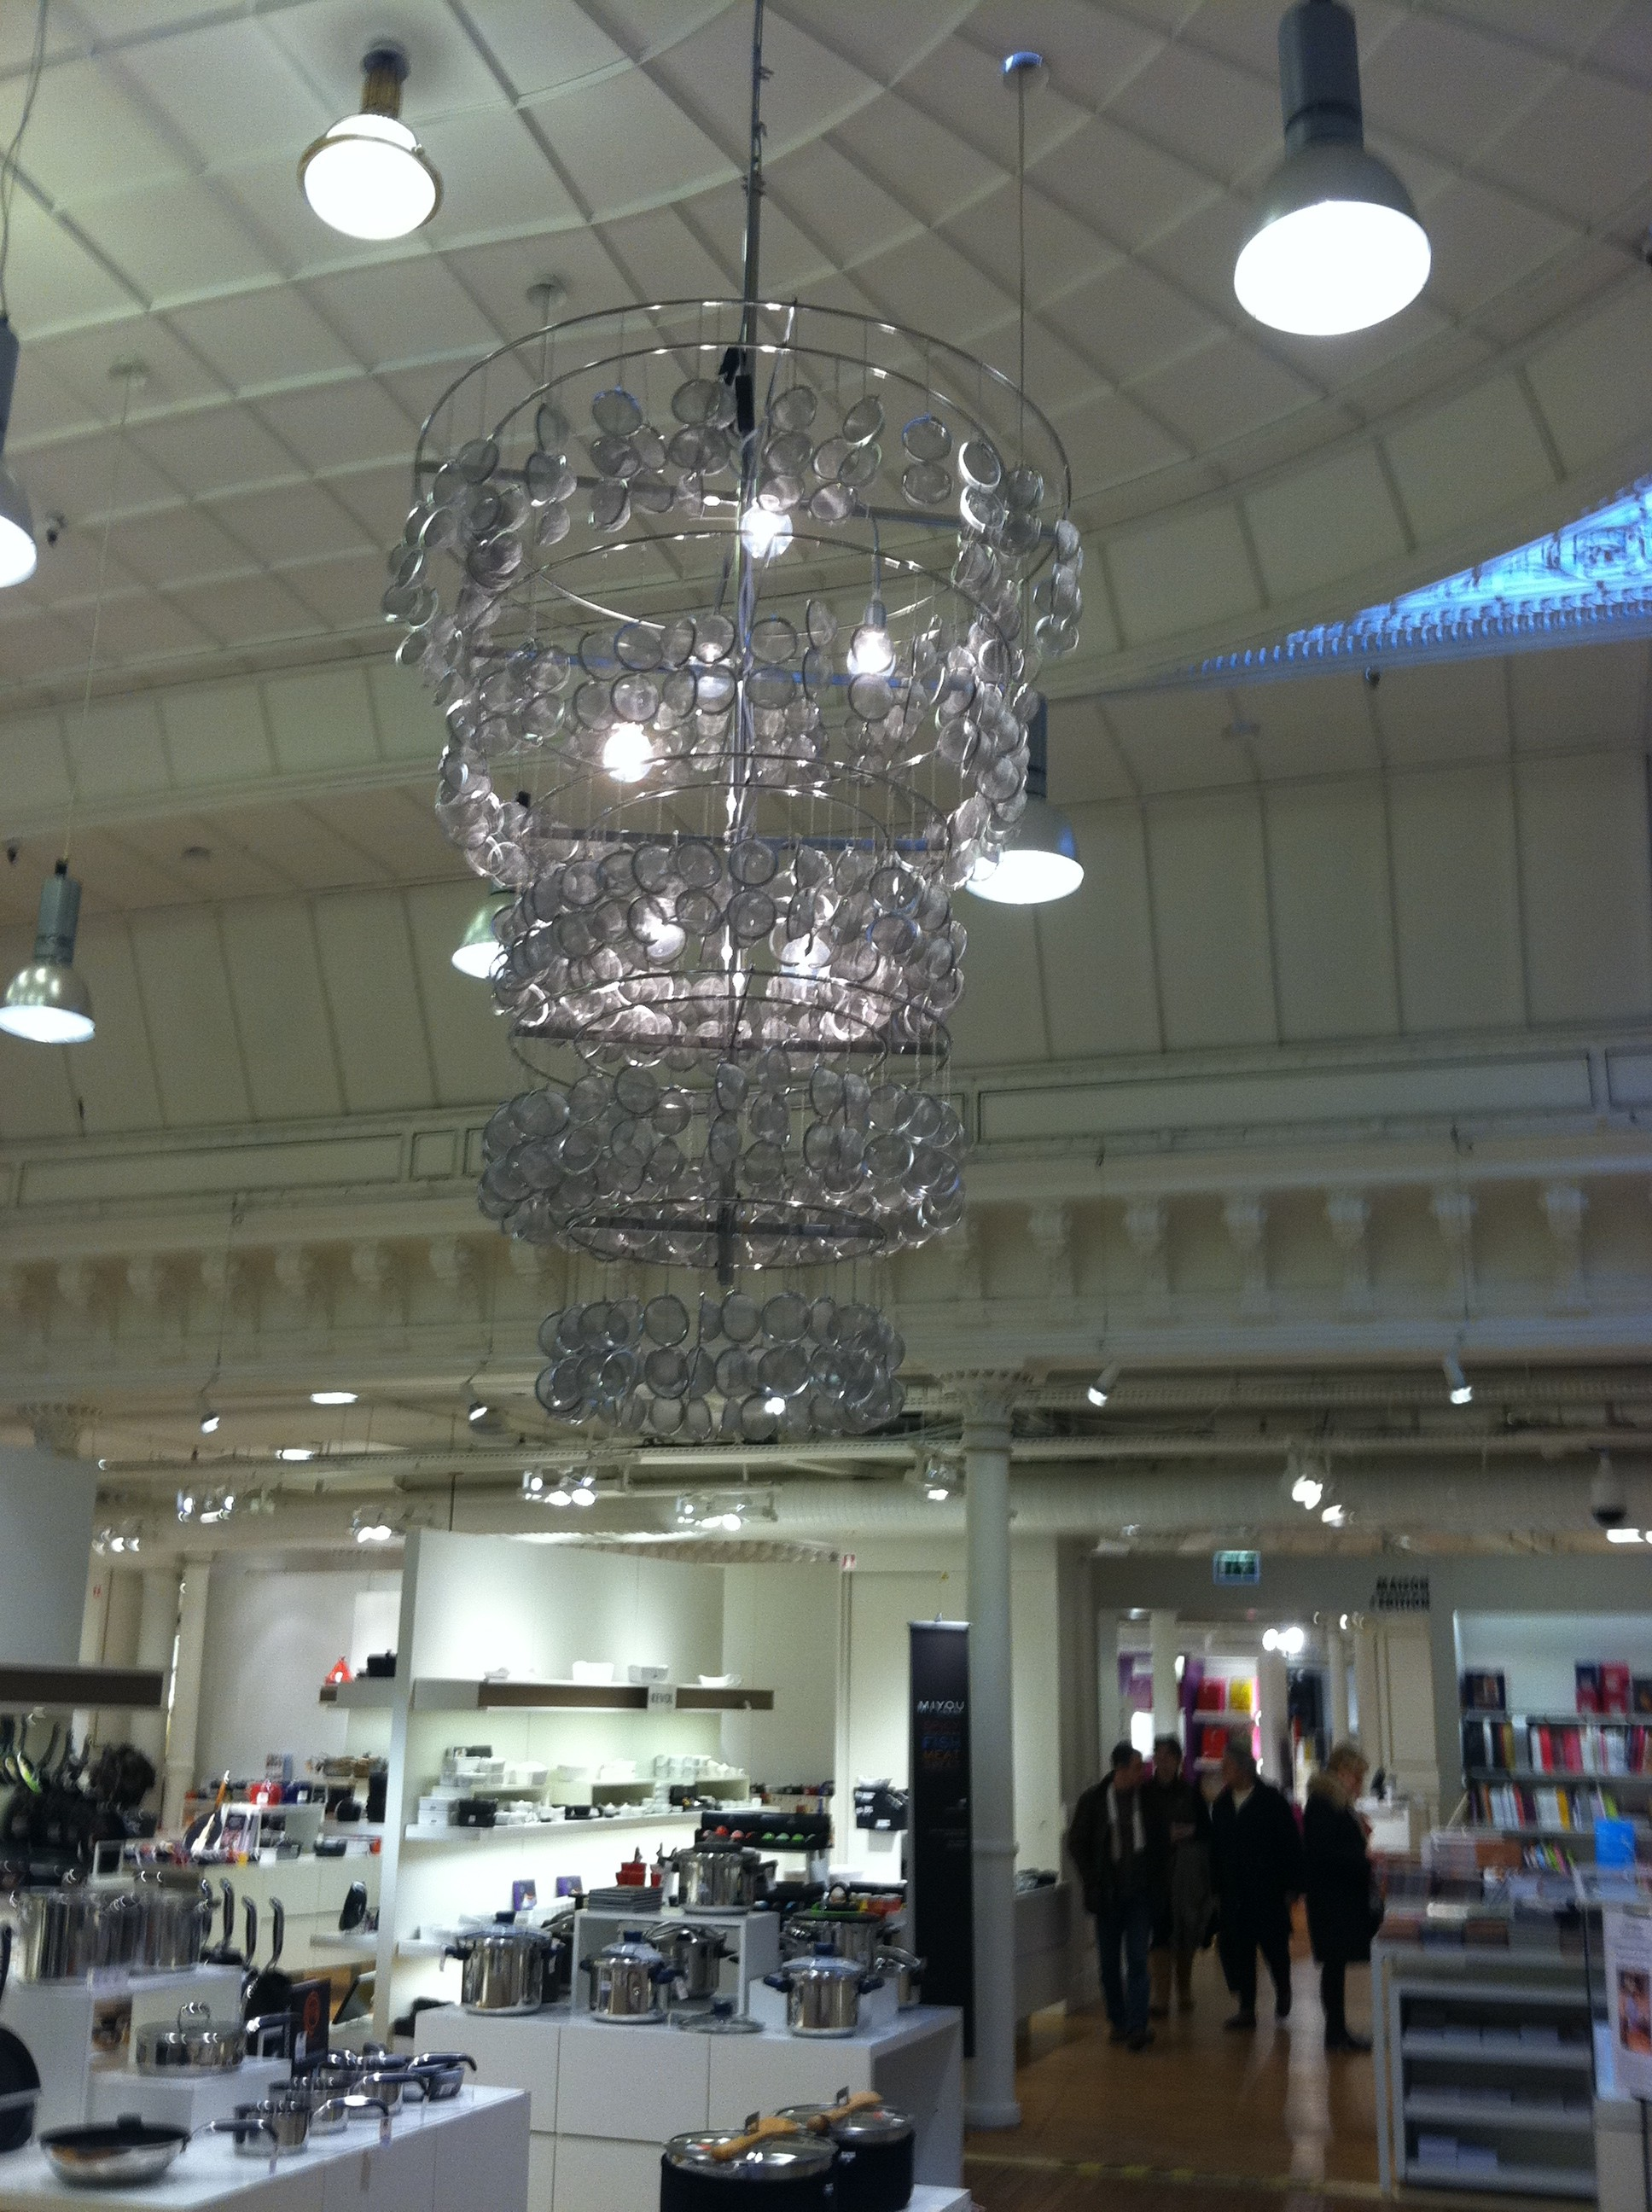 A large chandelier made up of repurposed strainers